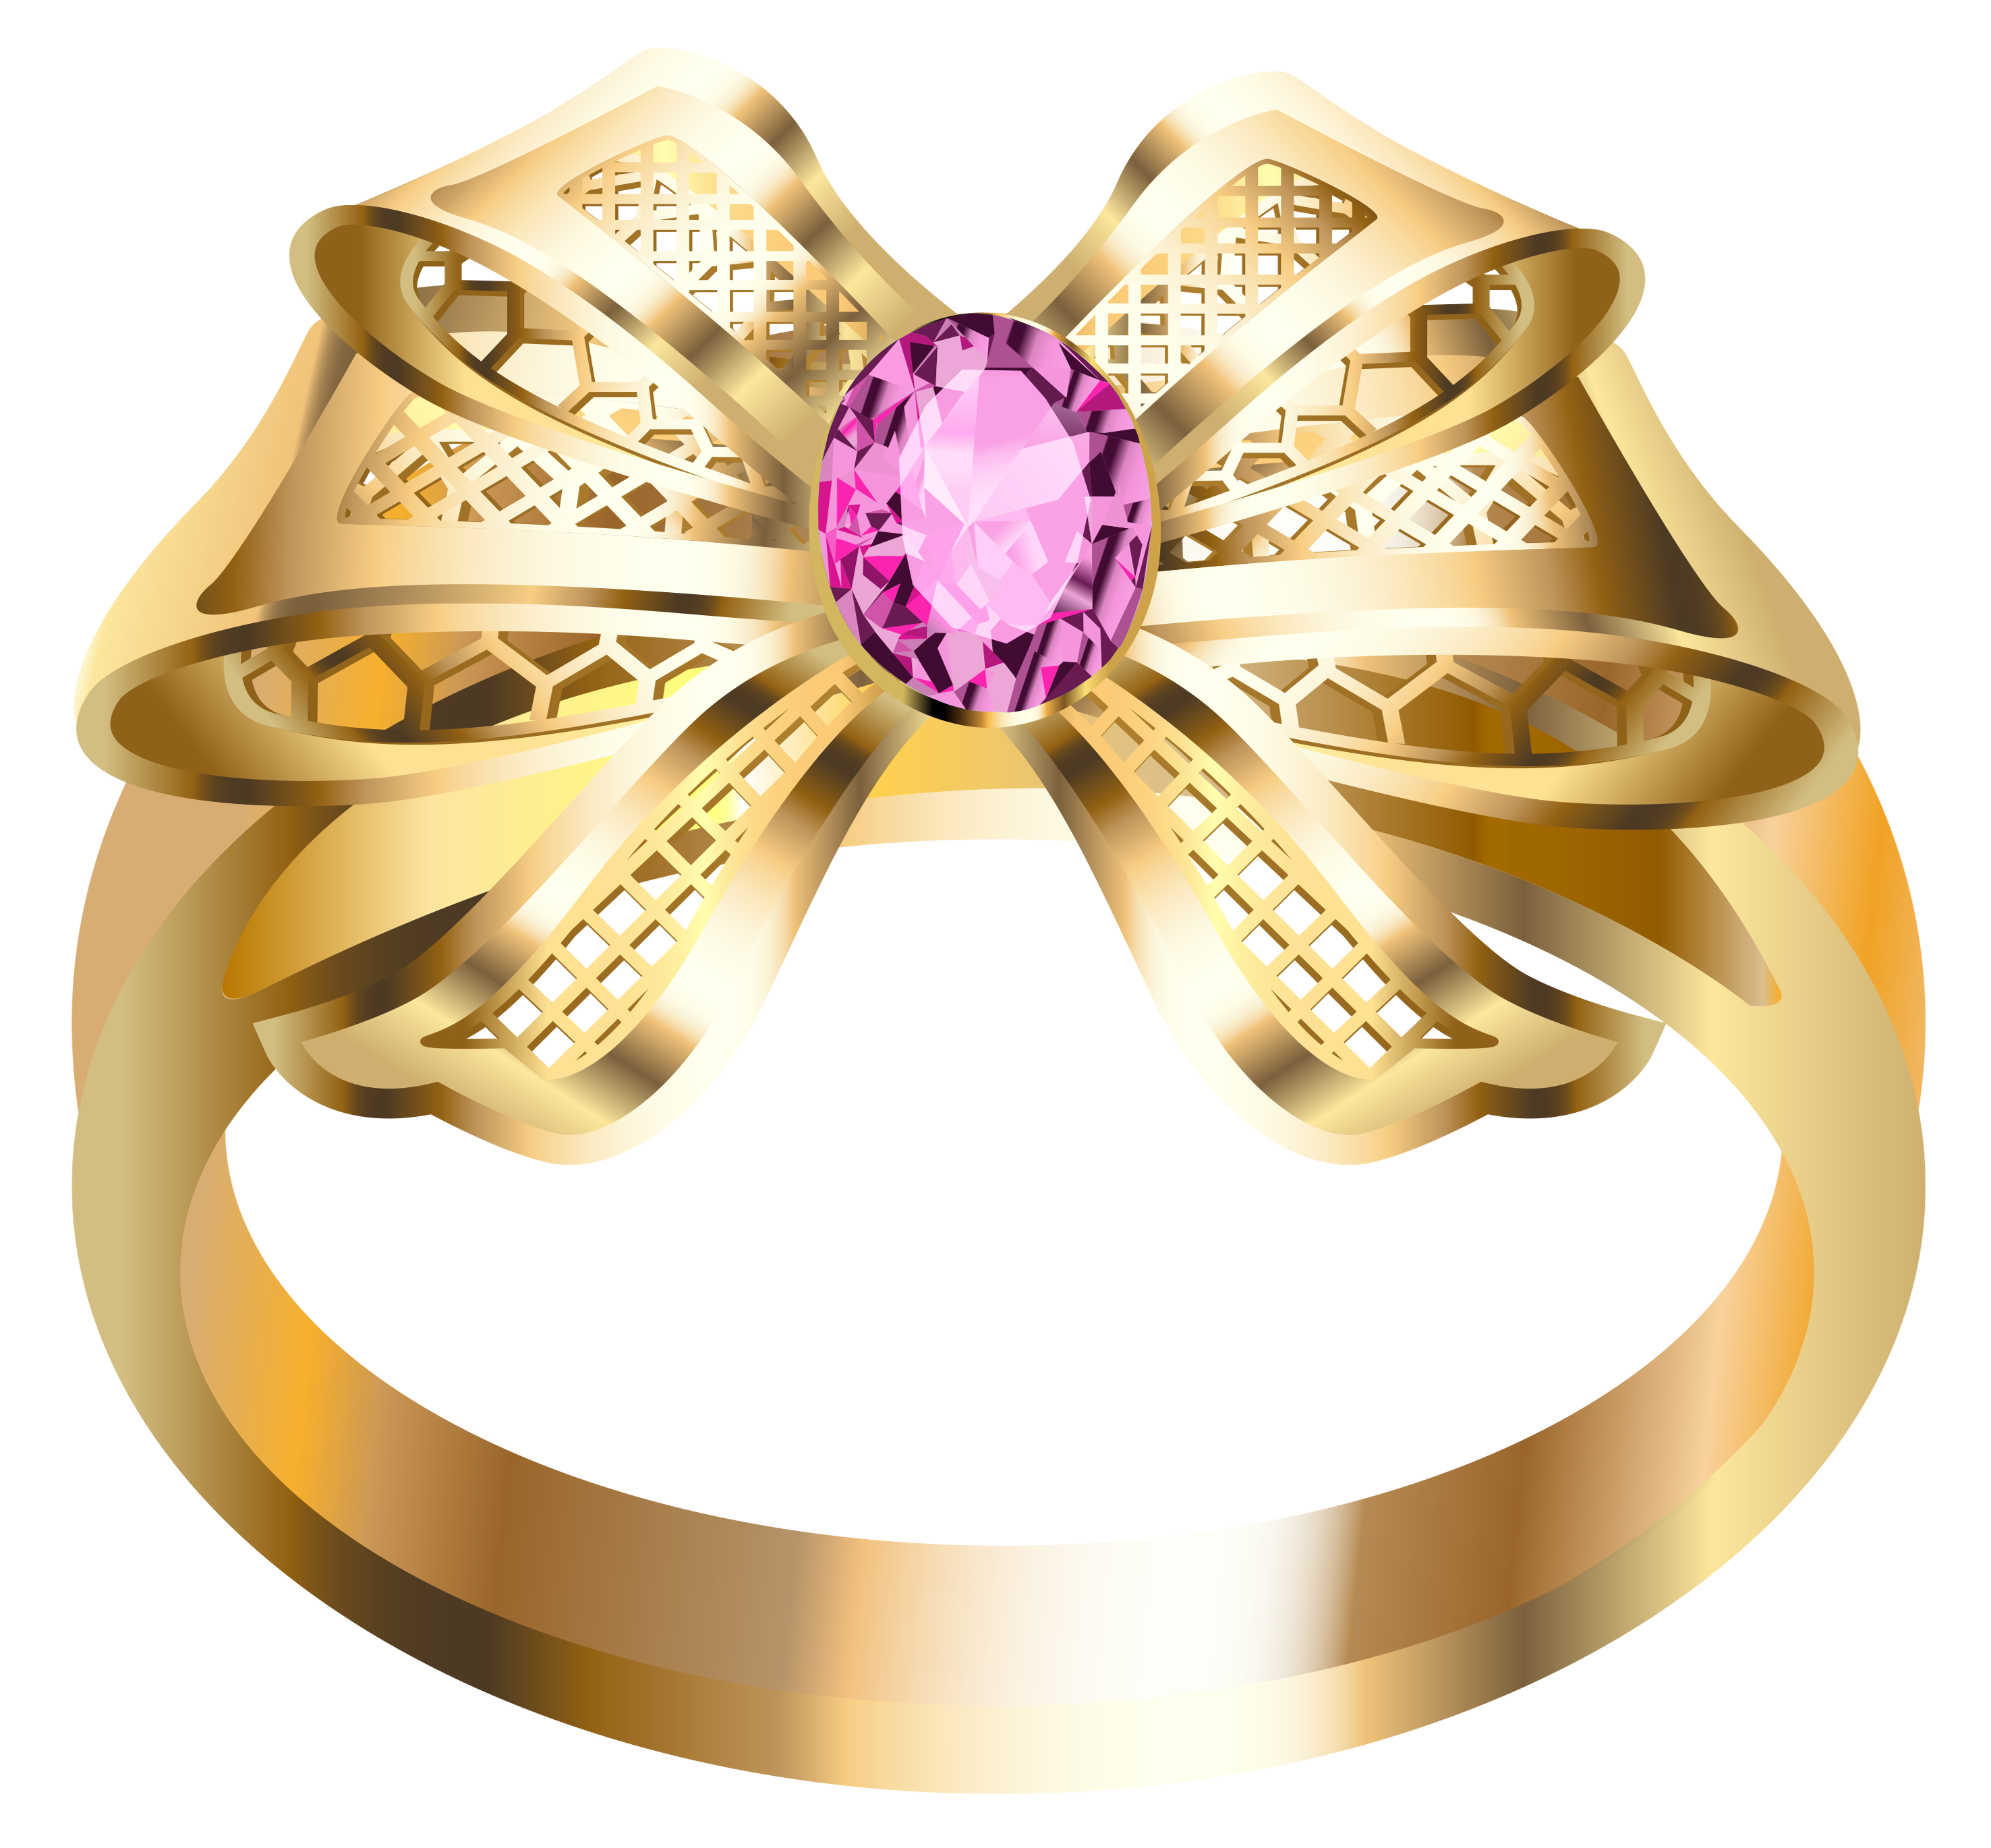 Ring clipart pink ring #13